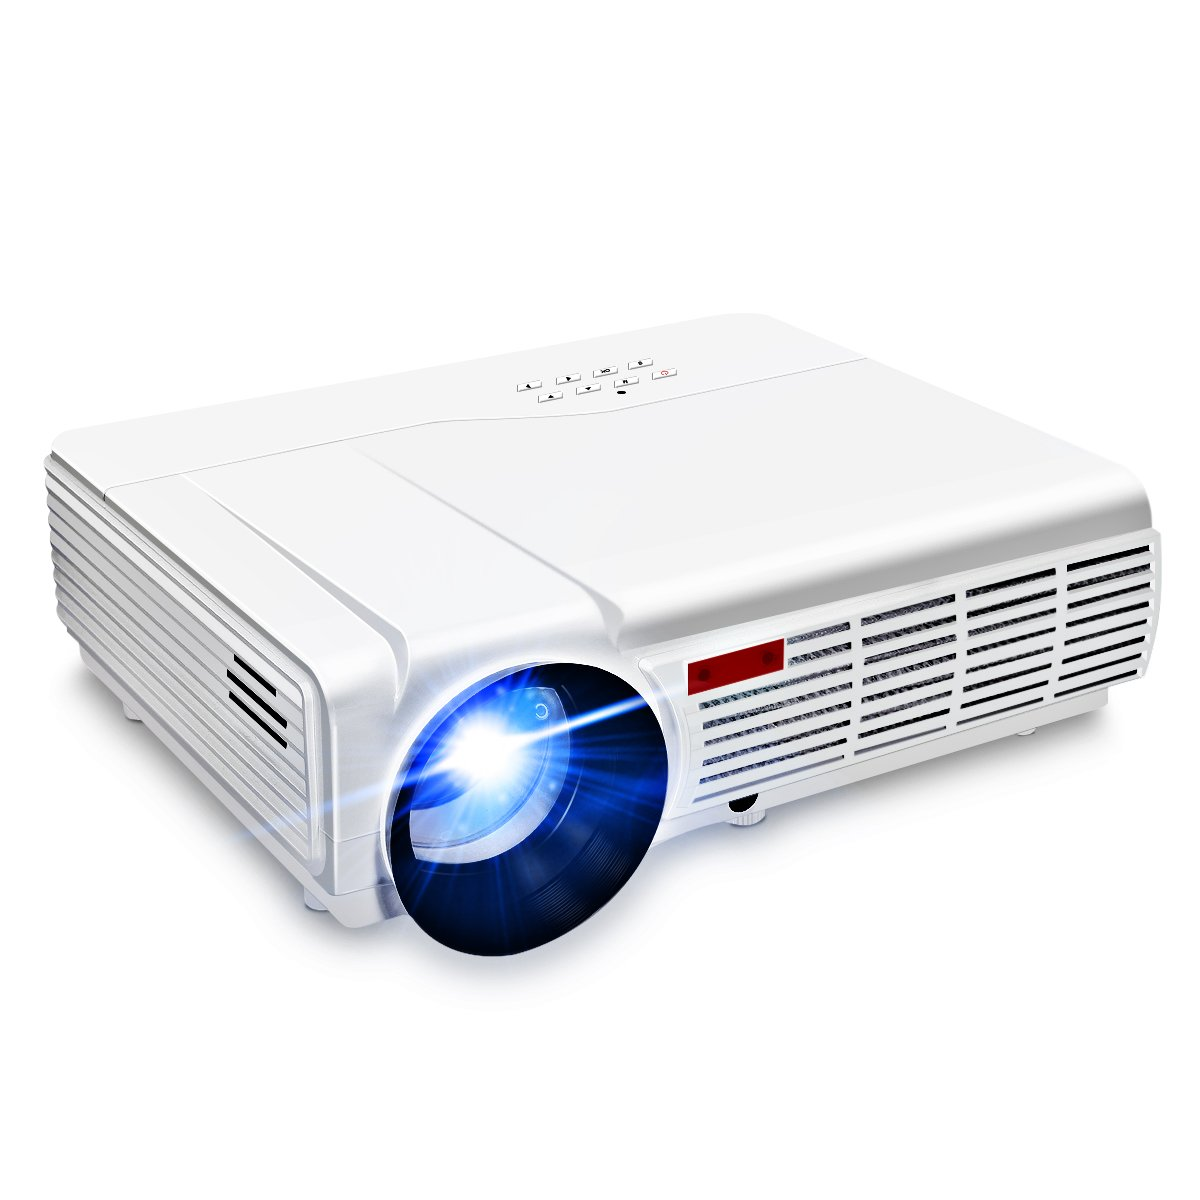 Wifi Projector,ELEGIANT 3000 Lumens Long life LED Full HD LED Home Cinema TV Projector Lcd Multimedia Video Game Projectors Support 1080P USB VGA AV TV Interface by ELEGIANT